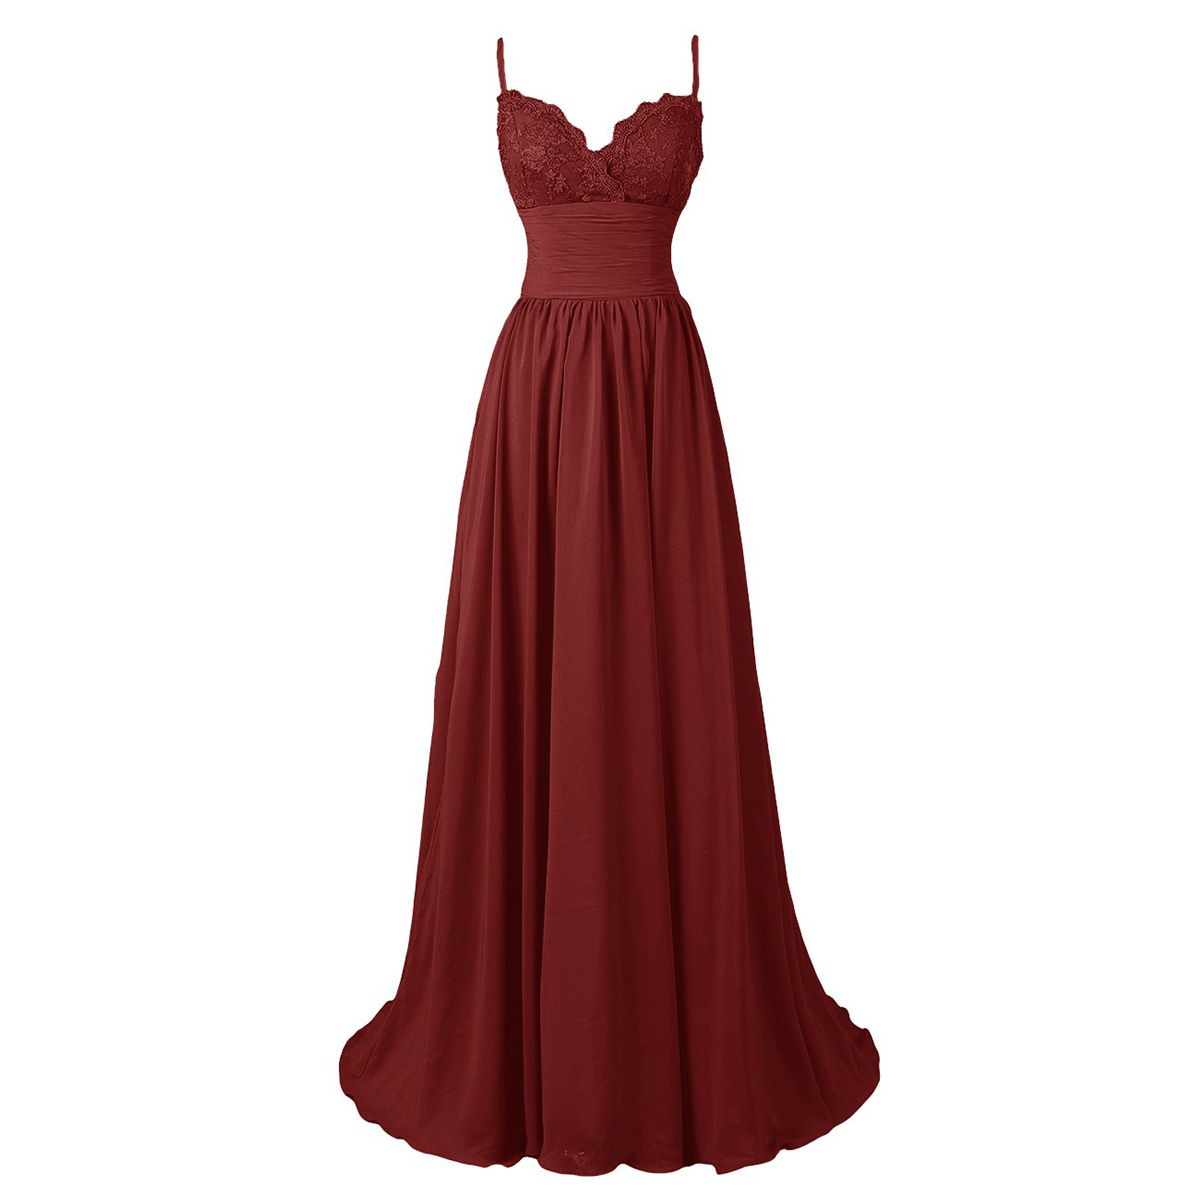 Burgundy floor length aline pleated prom dress featuring lace